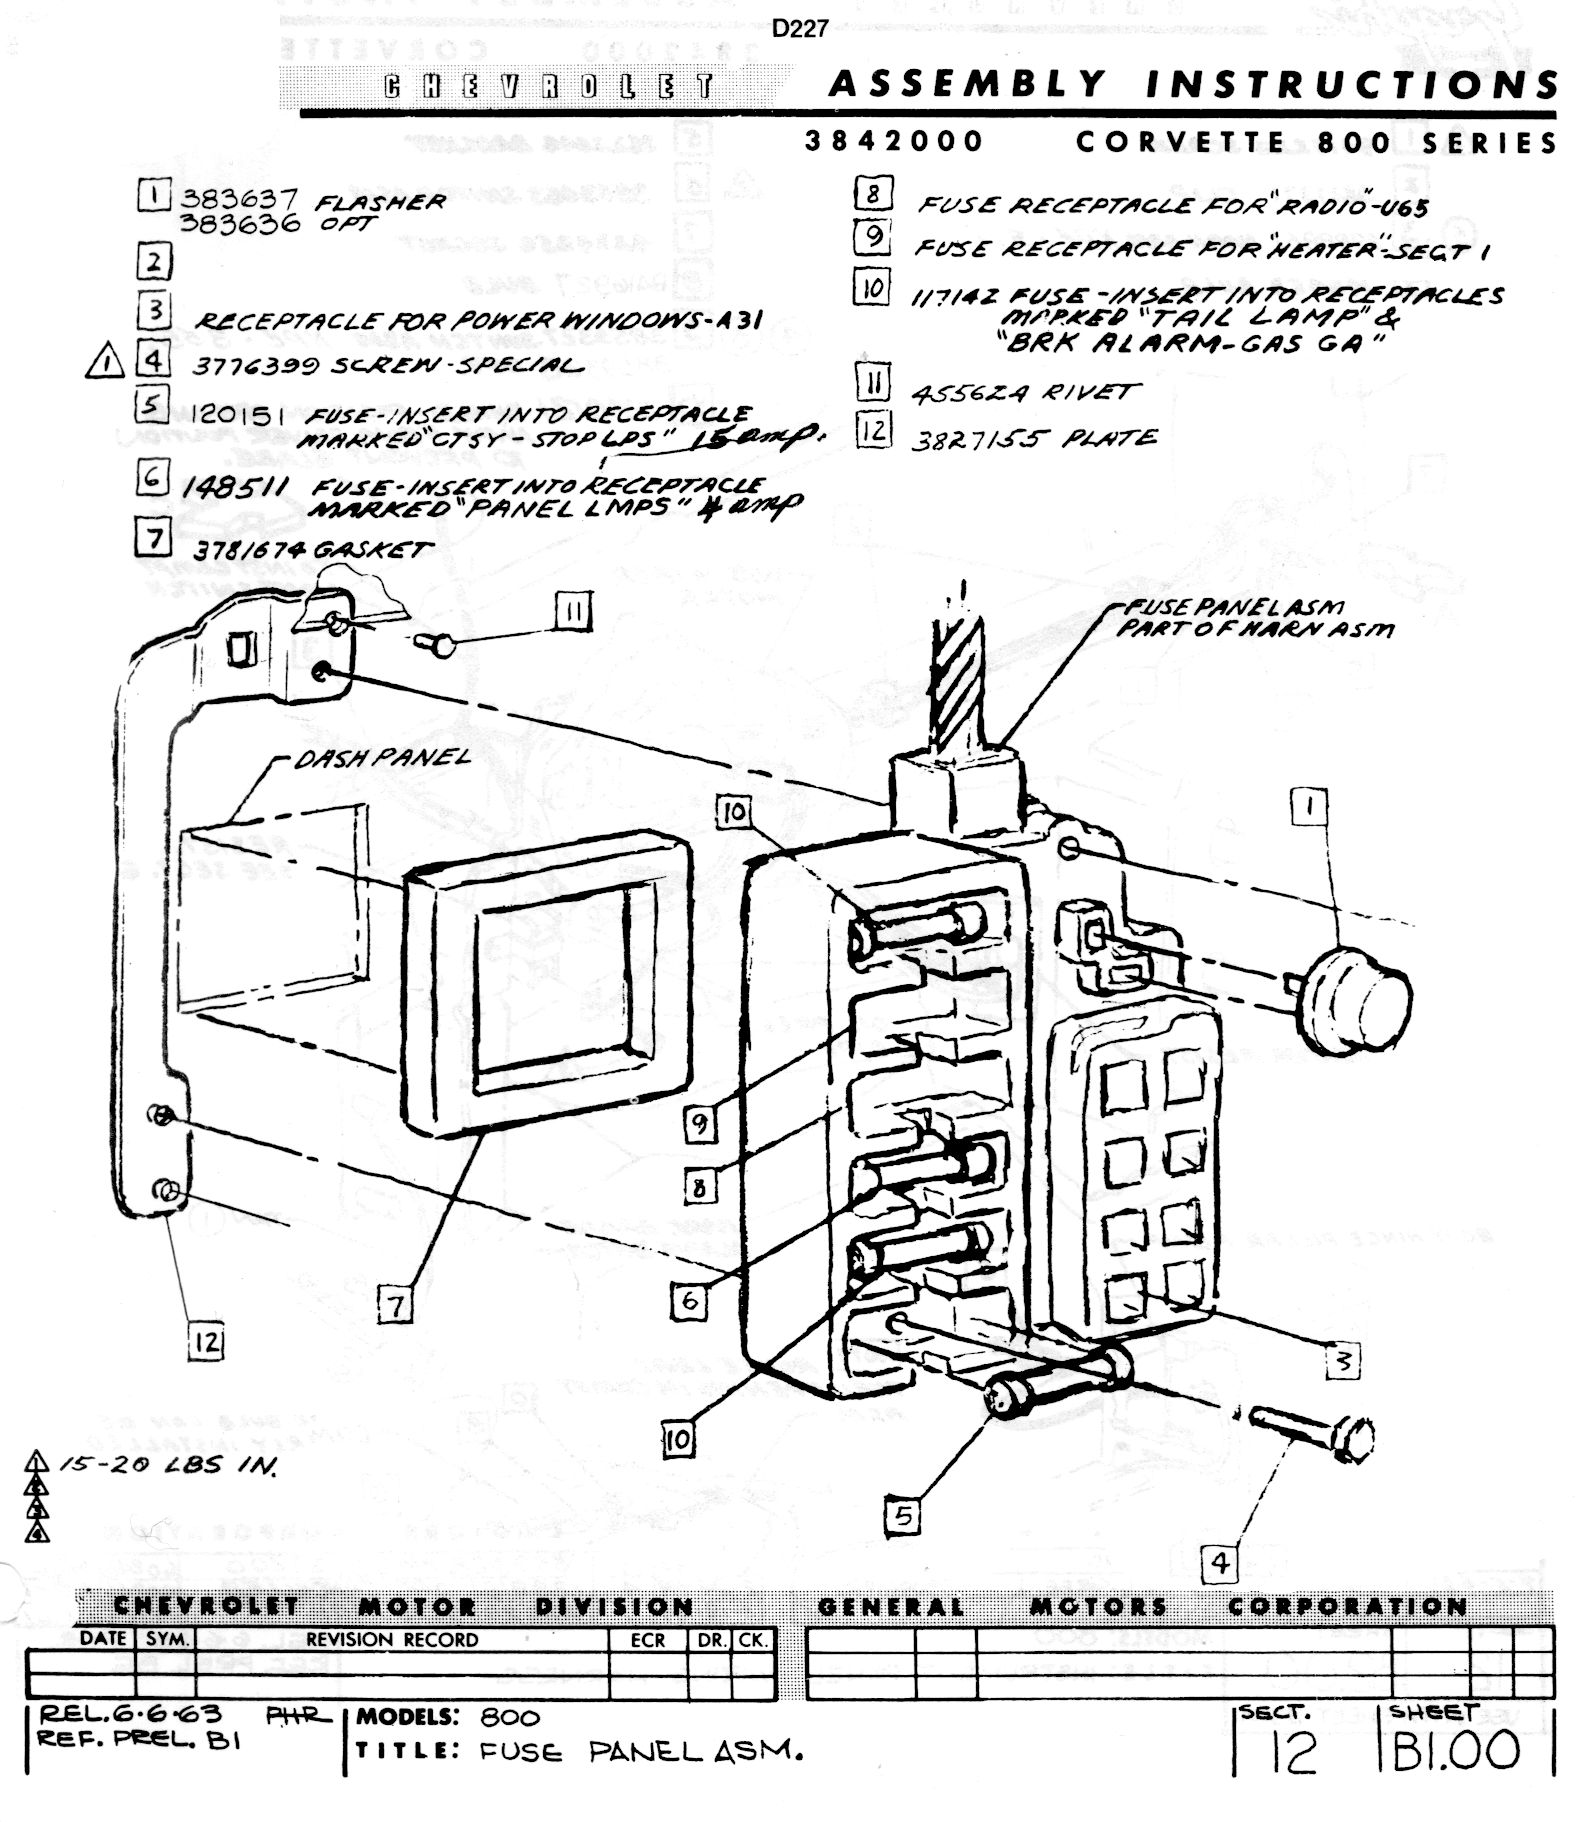 corvette fuse box diagram dgZvxgv corvette fuse box diagram image details 1977 corvette fuse box diagram at nearapp.co